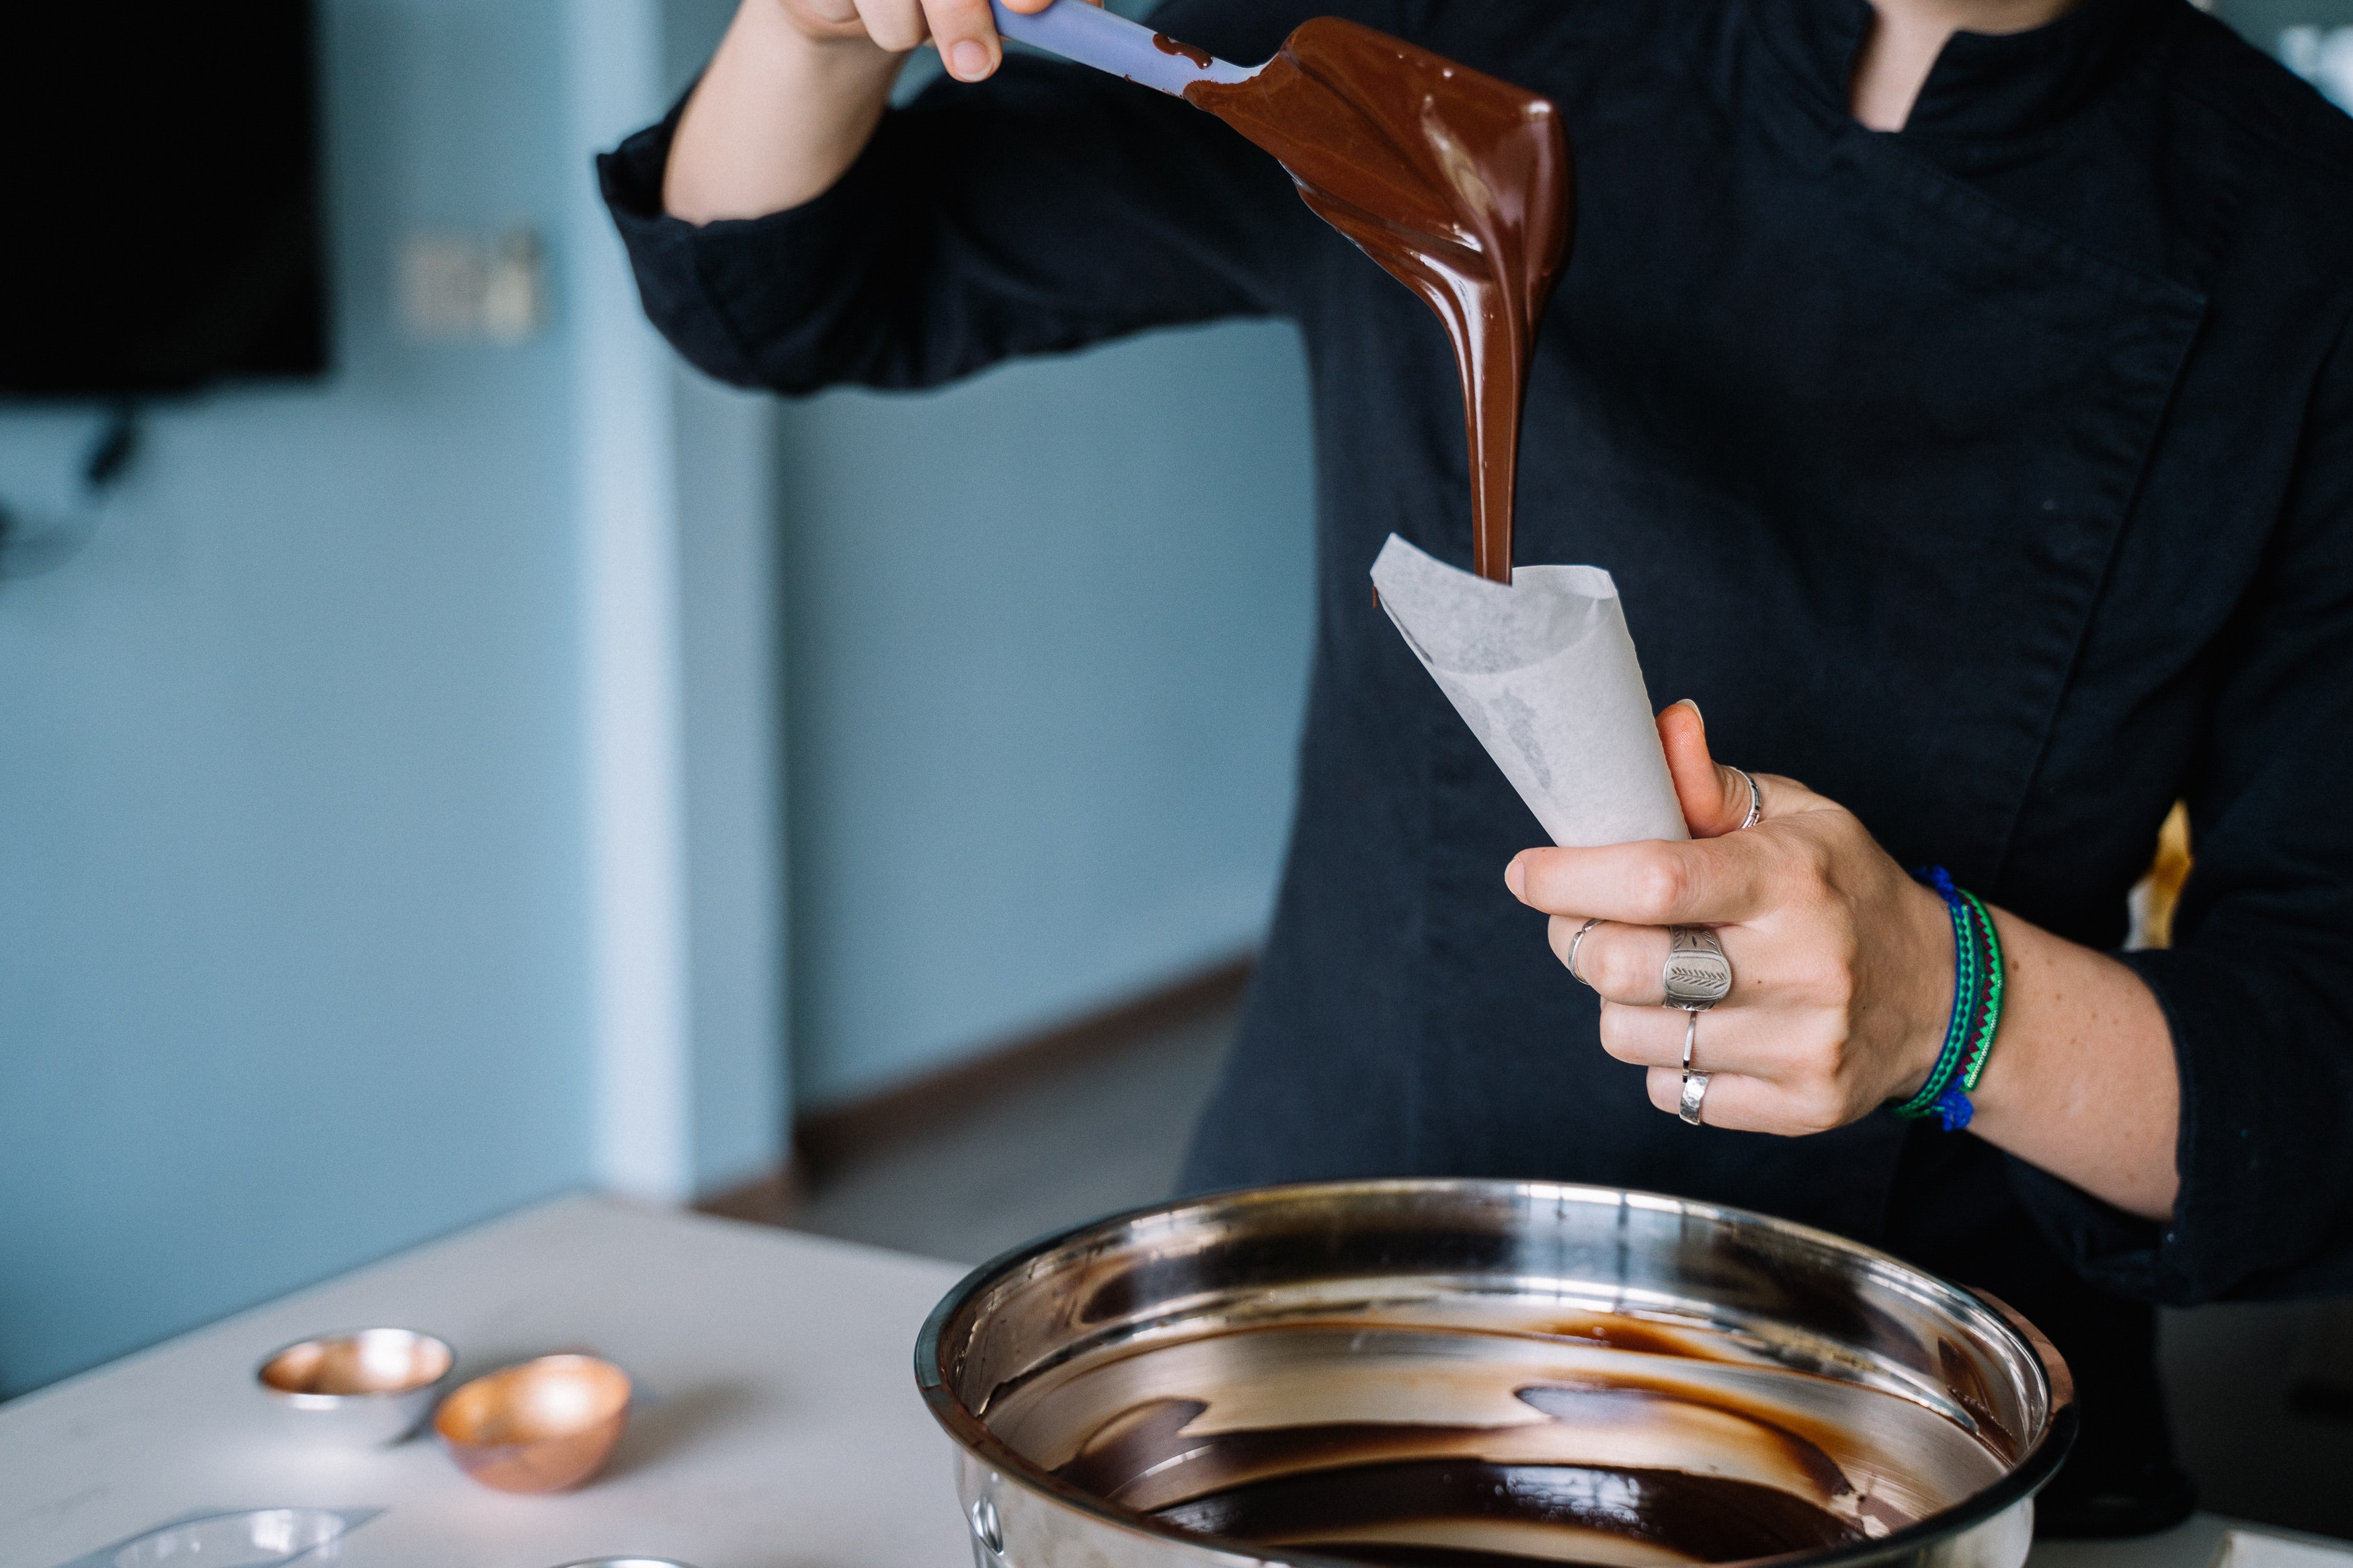 8 things you didn't know you could make out of chocolate